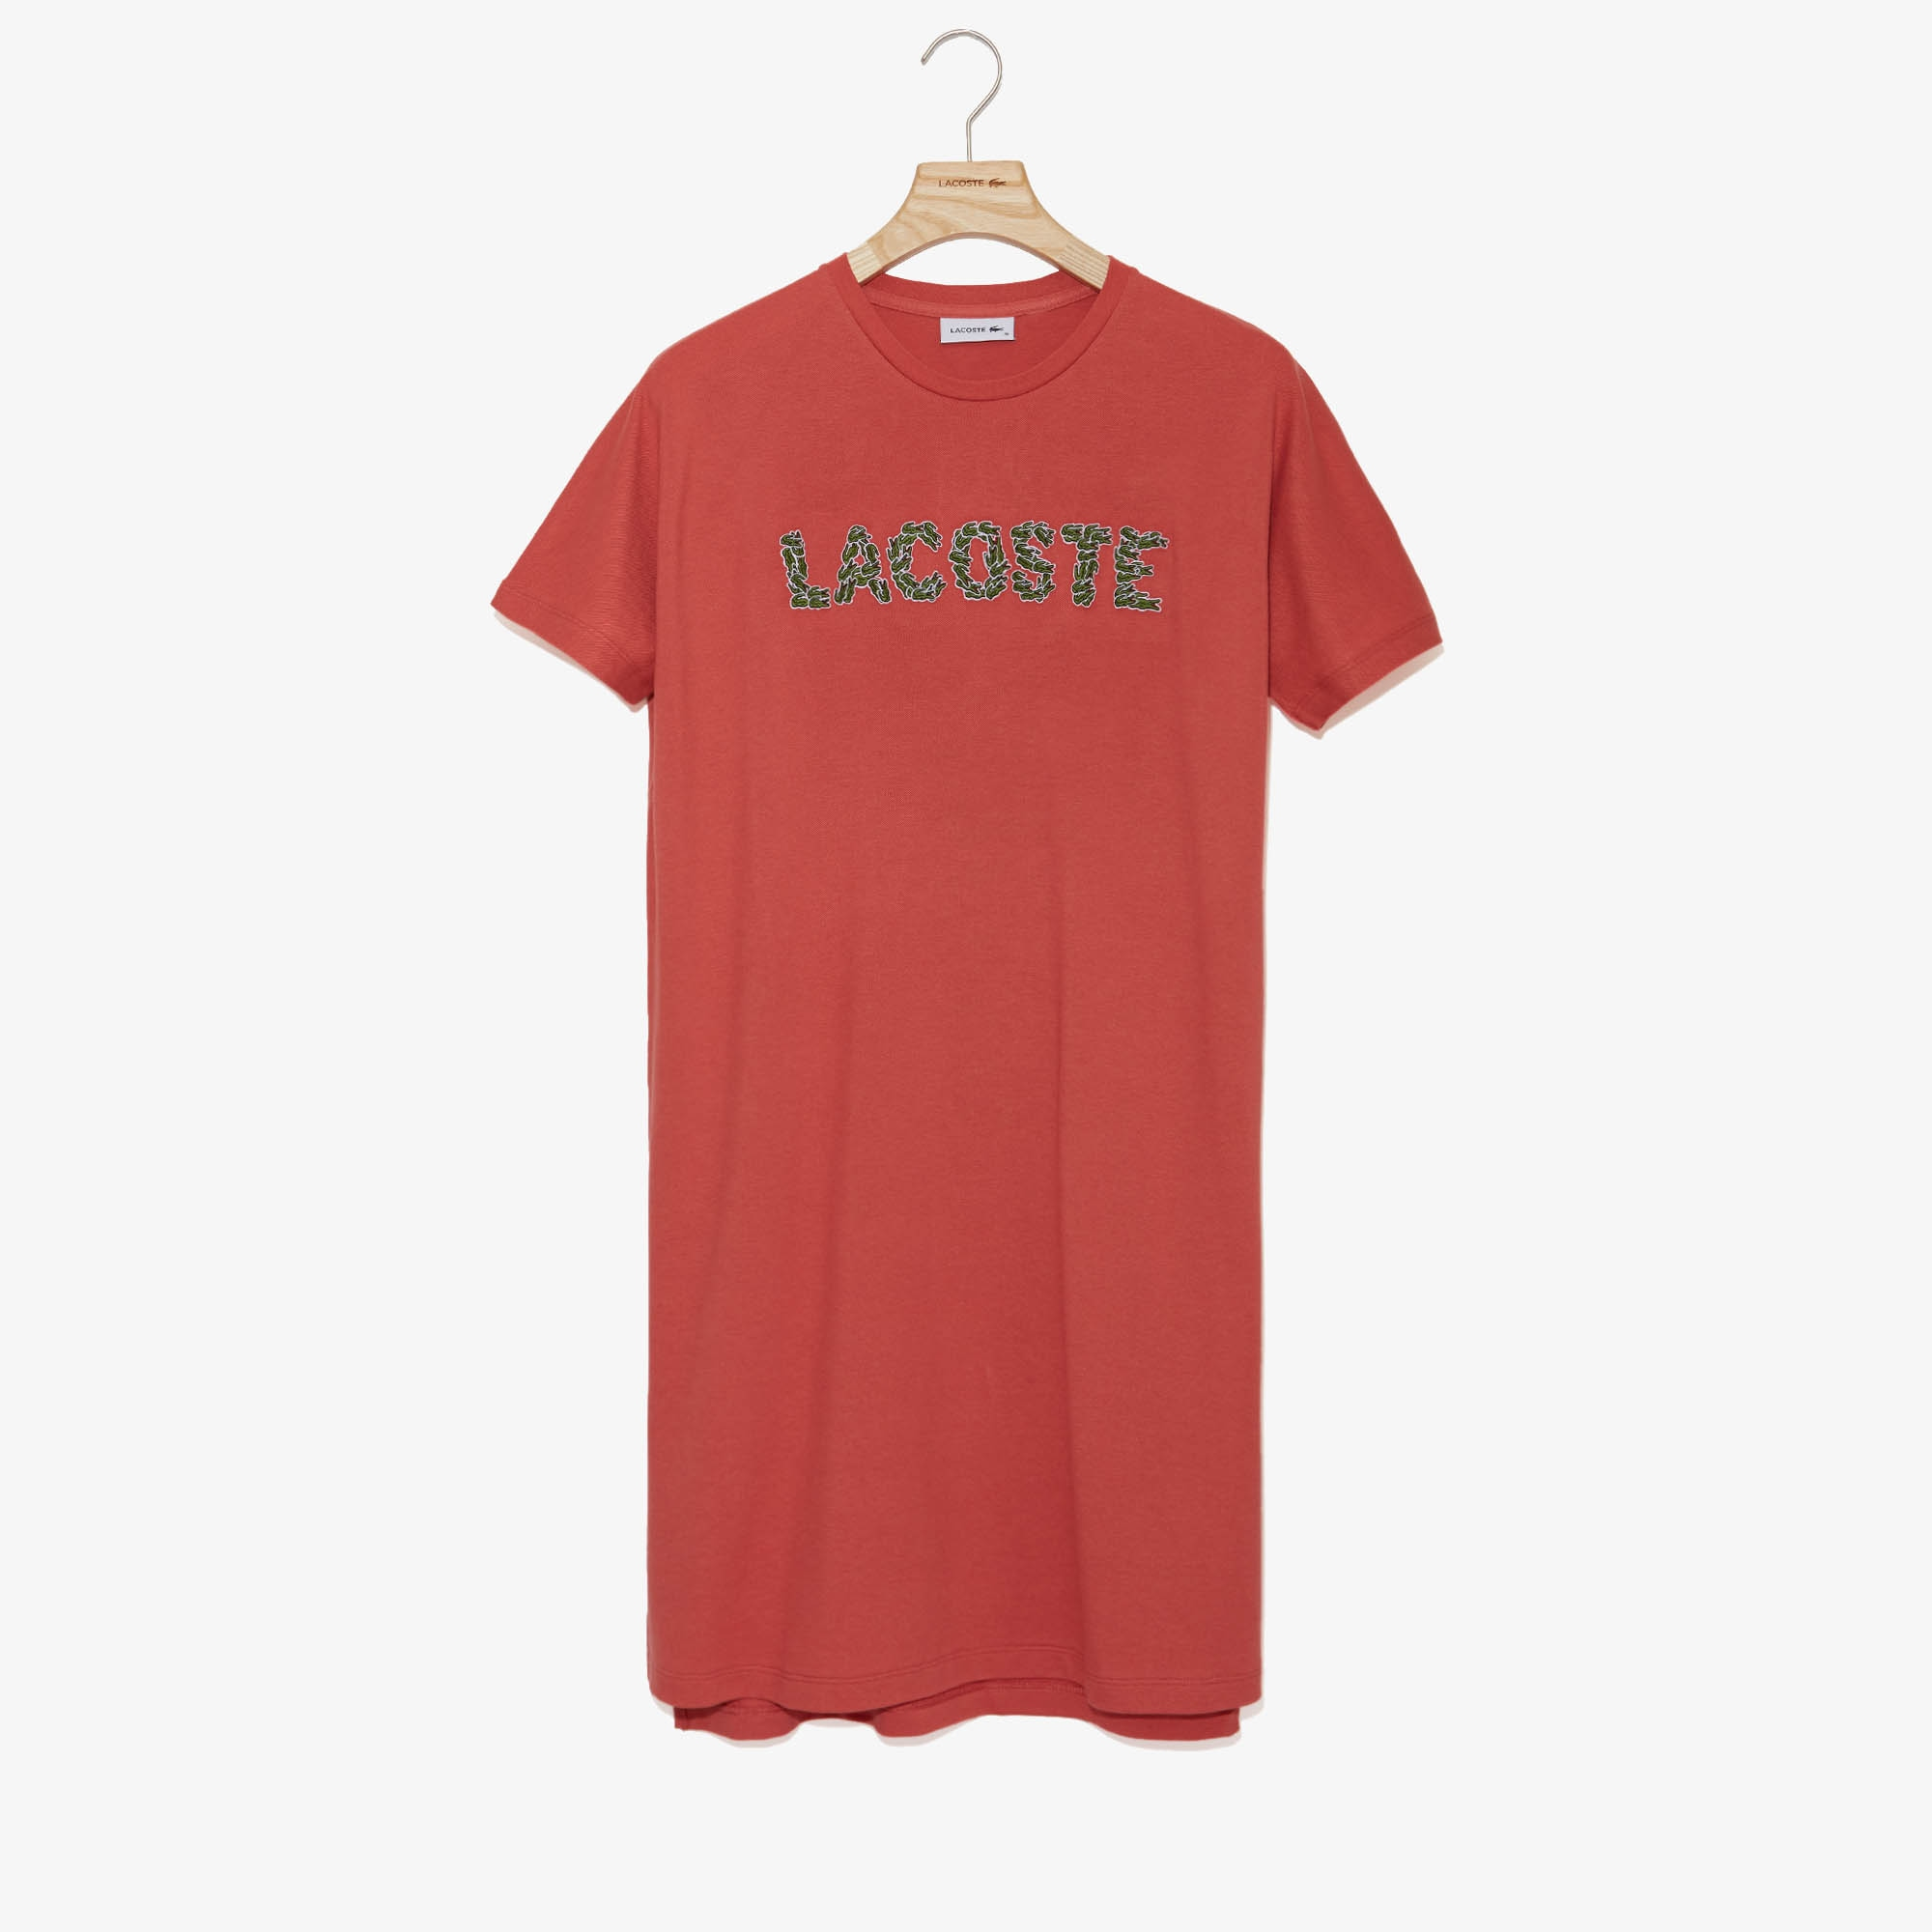 Lacoste Dresses Women's Croco Magic Cotton T-Shirt Dress